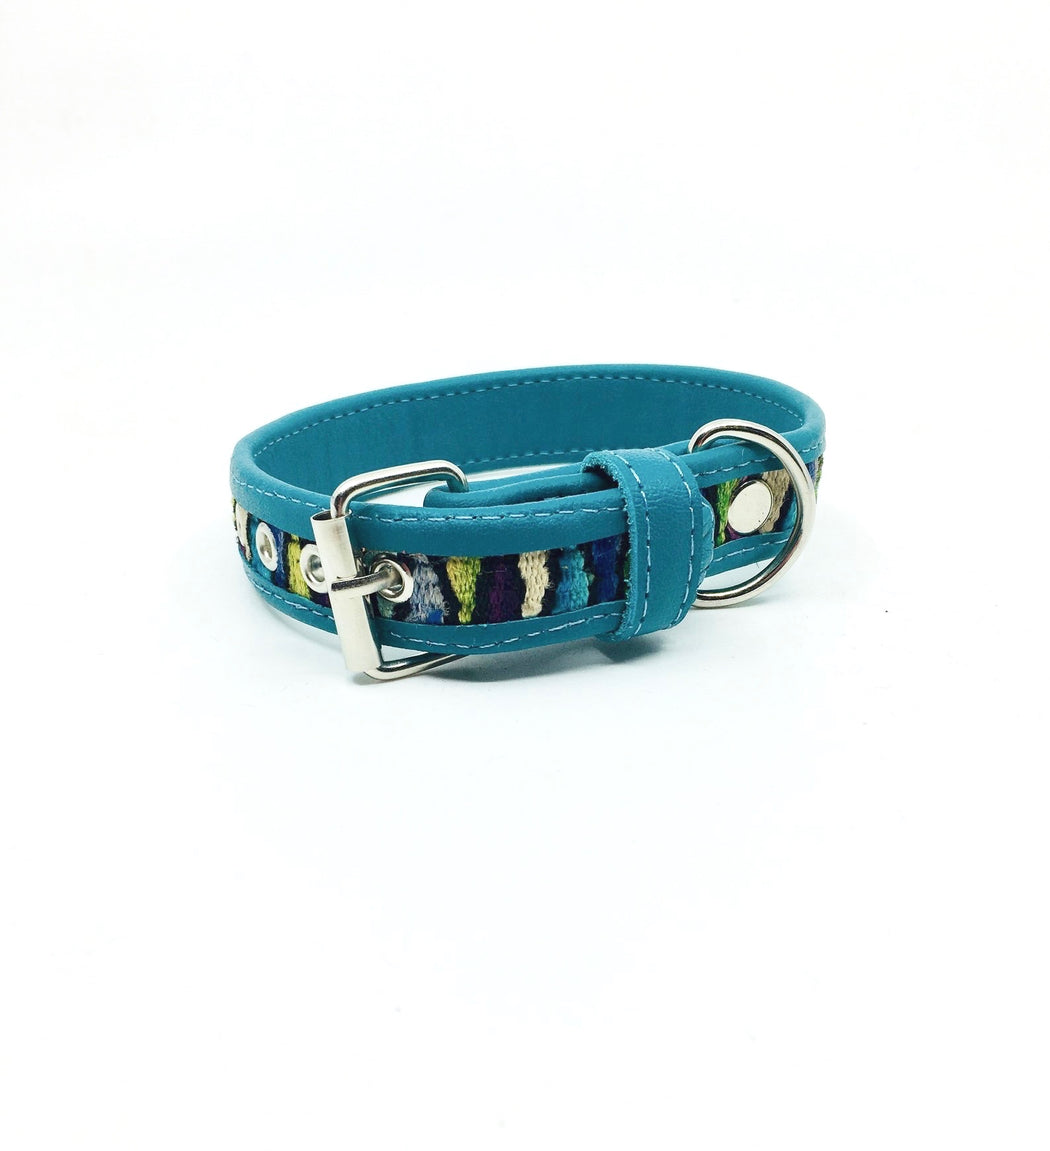 Small Turquoise Leather V Dog Collar